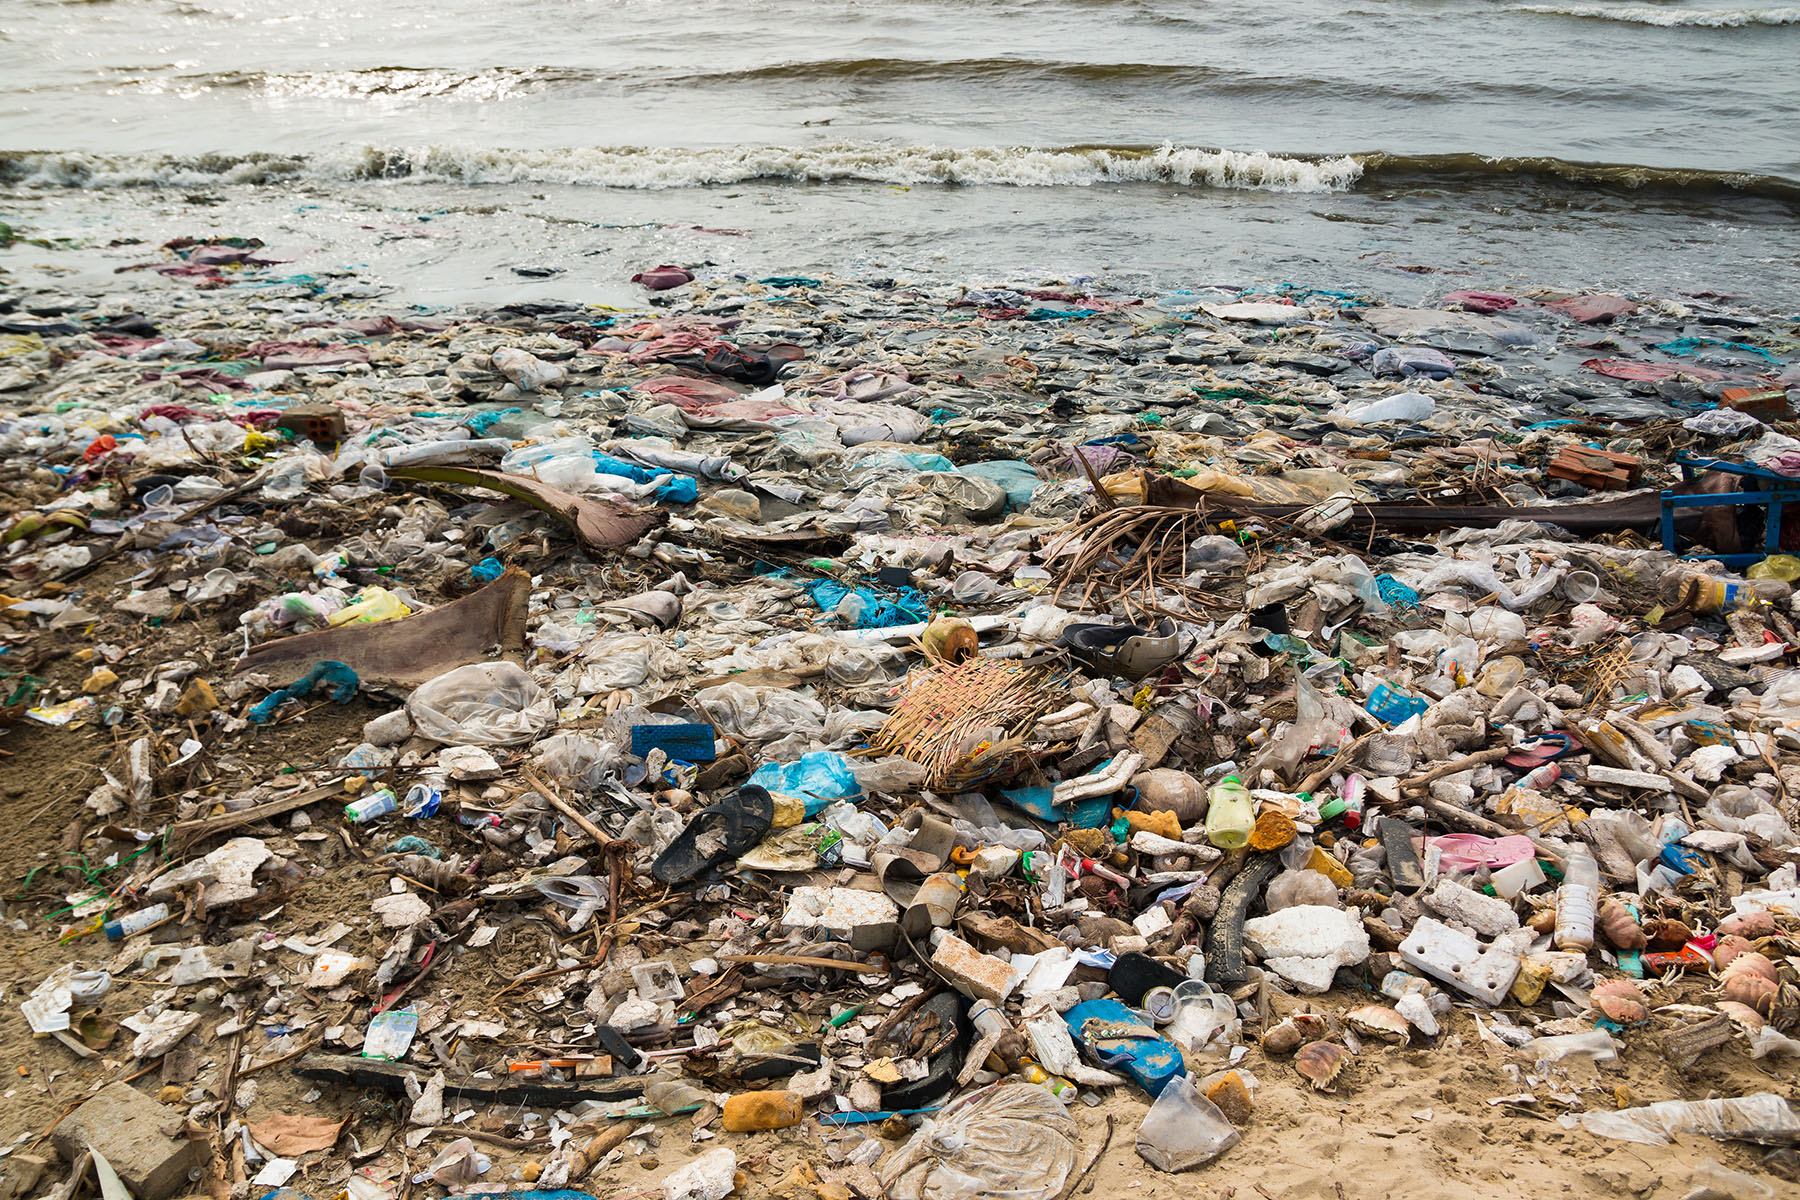 Polluted beach in fishing village, environment, pollution